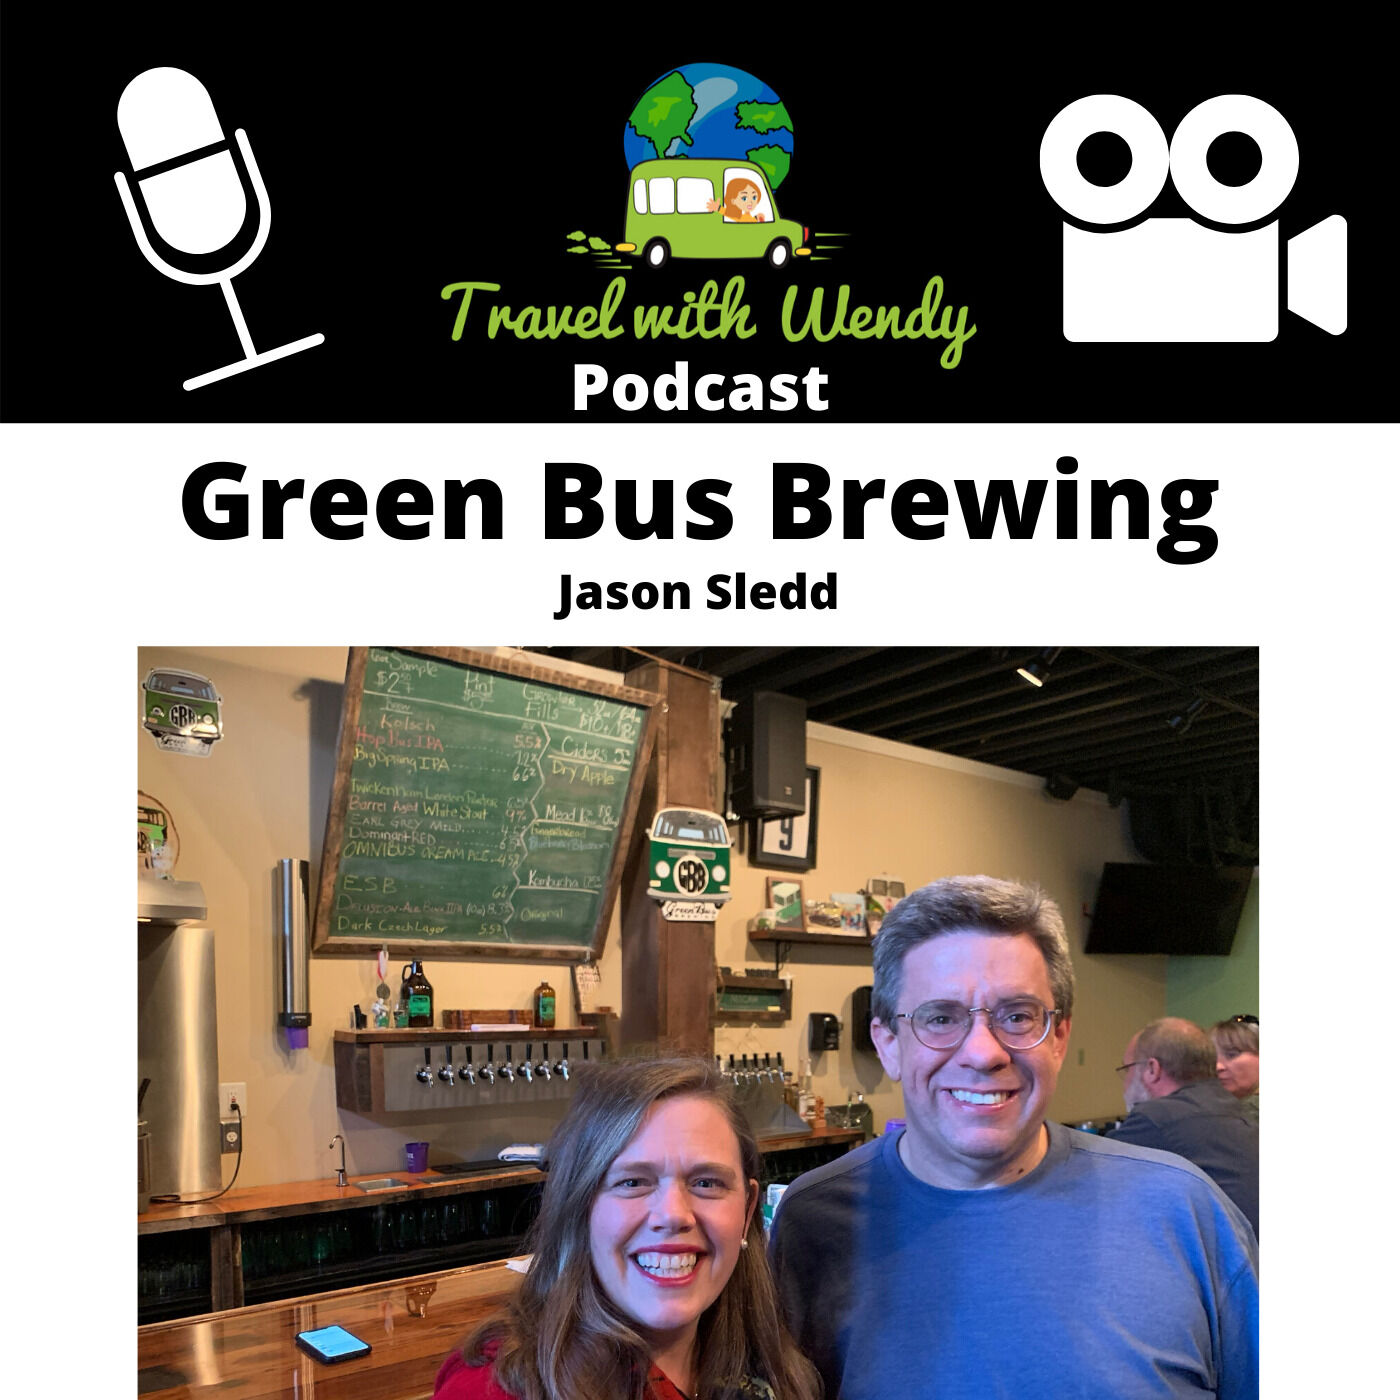 #9 Green Bus Brewing - Jason Sledd